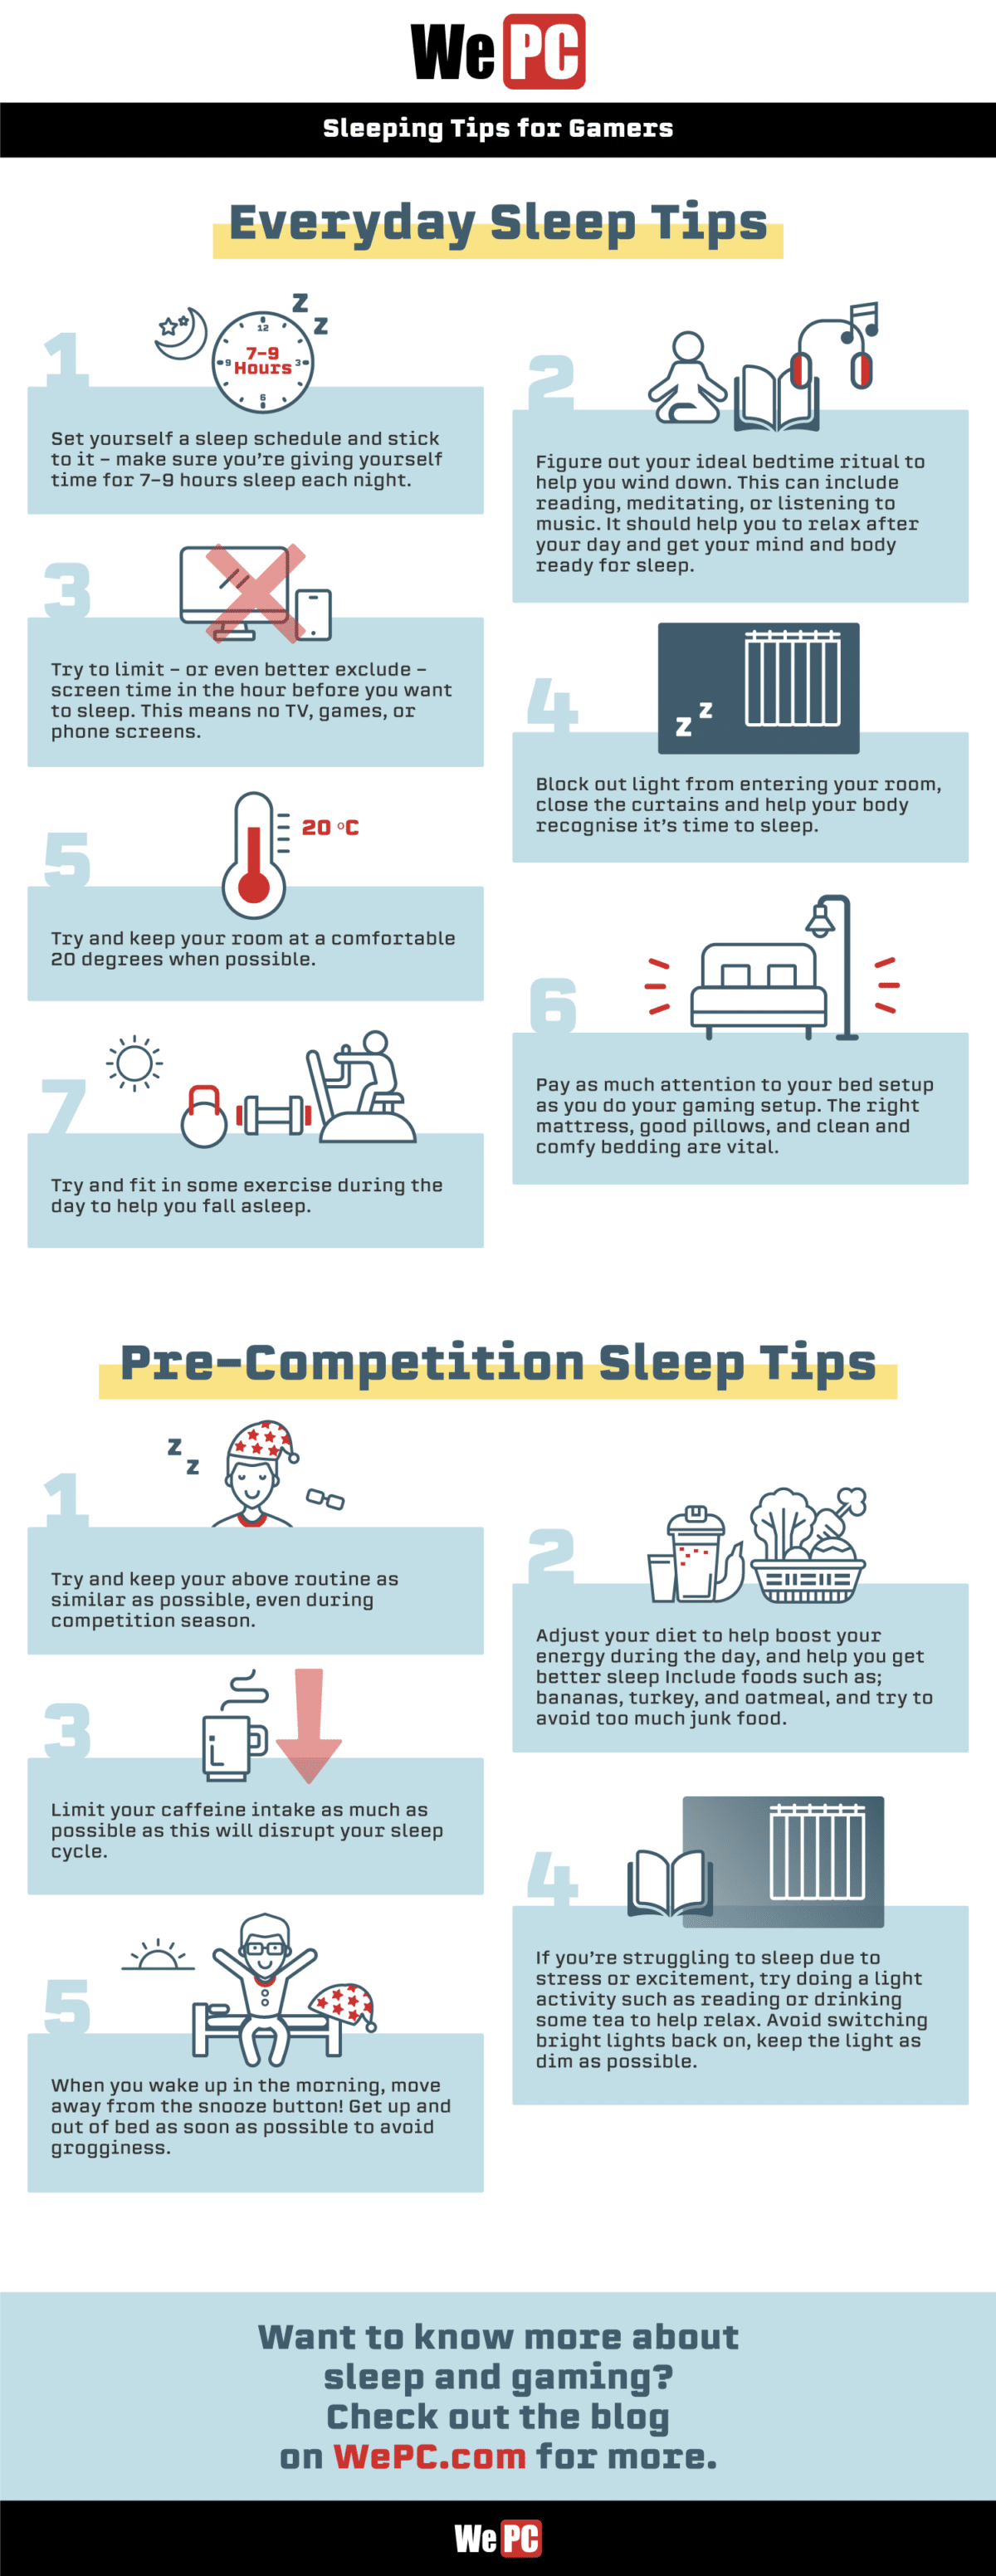 3 Sleeping Tips for Gamers